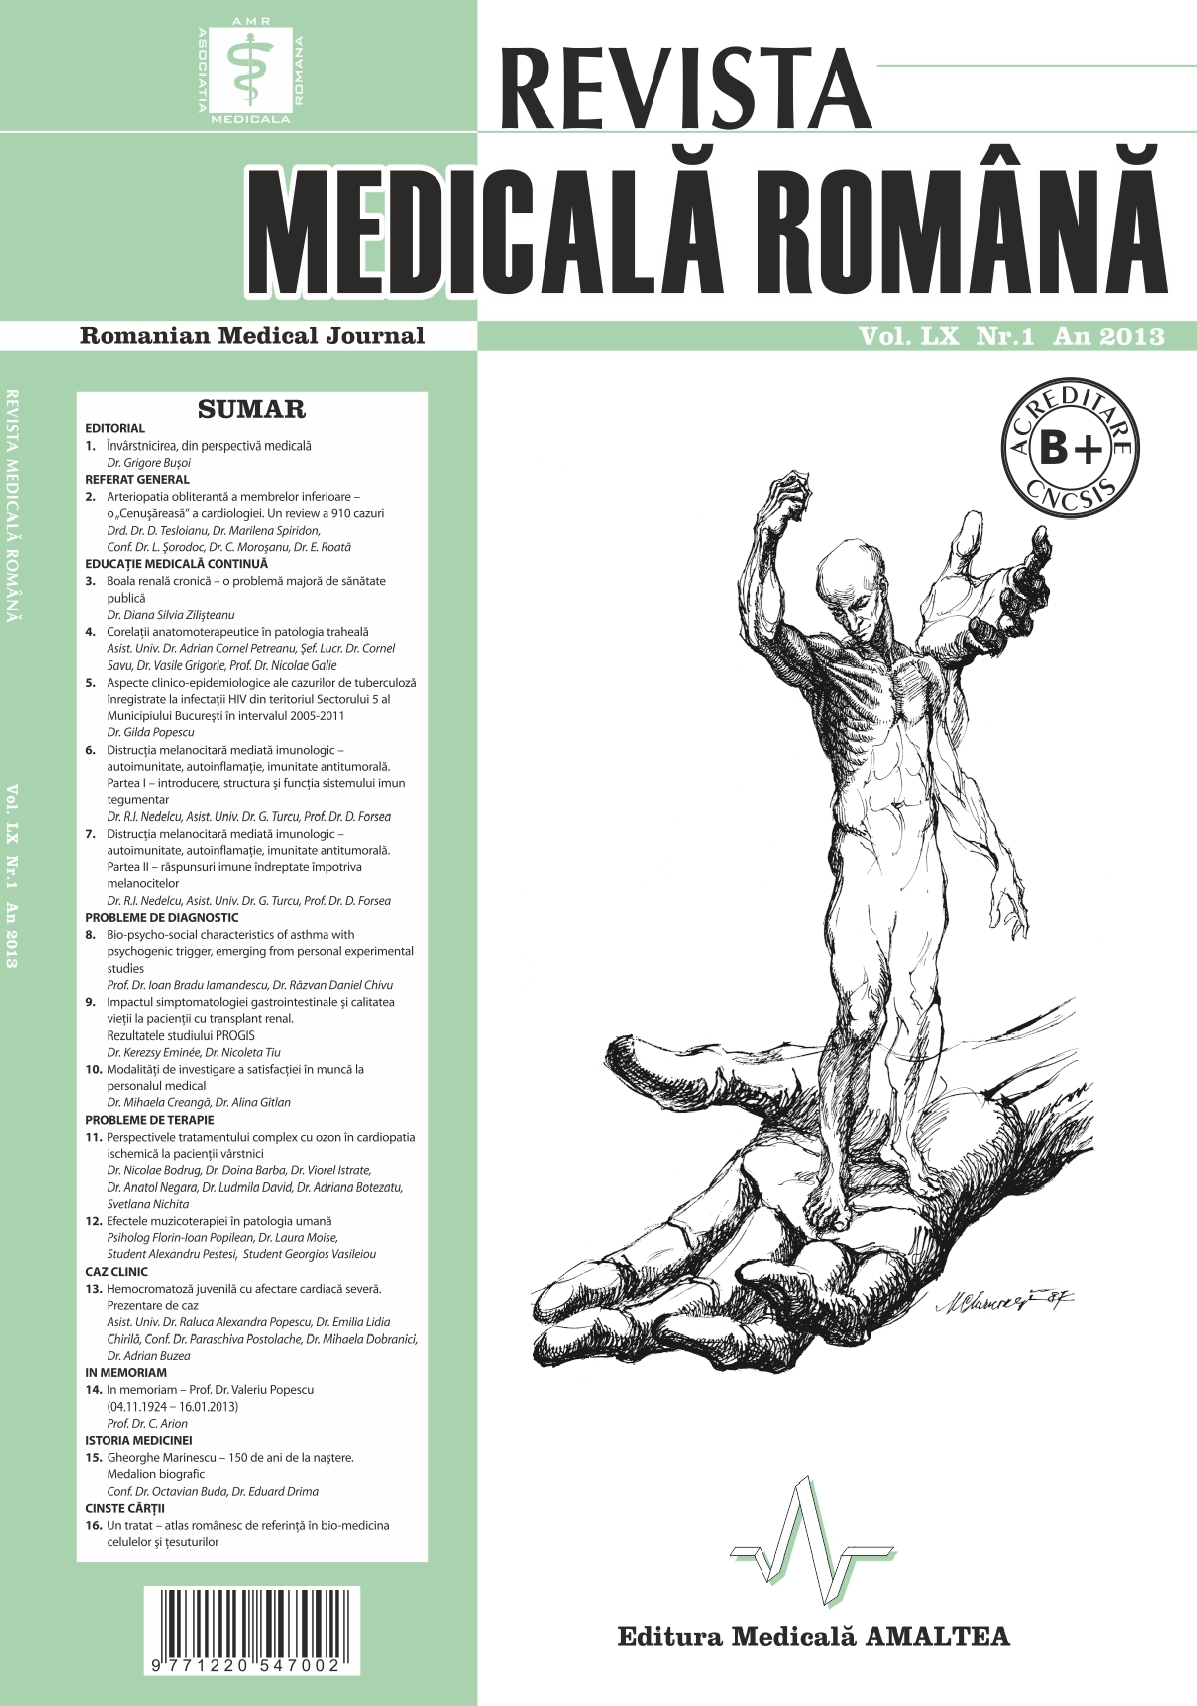 REVISTA MEDICALA ROMANA - Romanian Medical Journal, Vol. LX, Nr. 1, An 2013